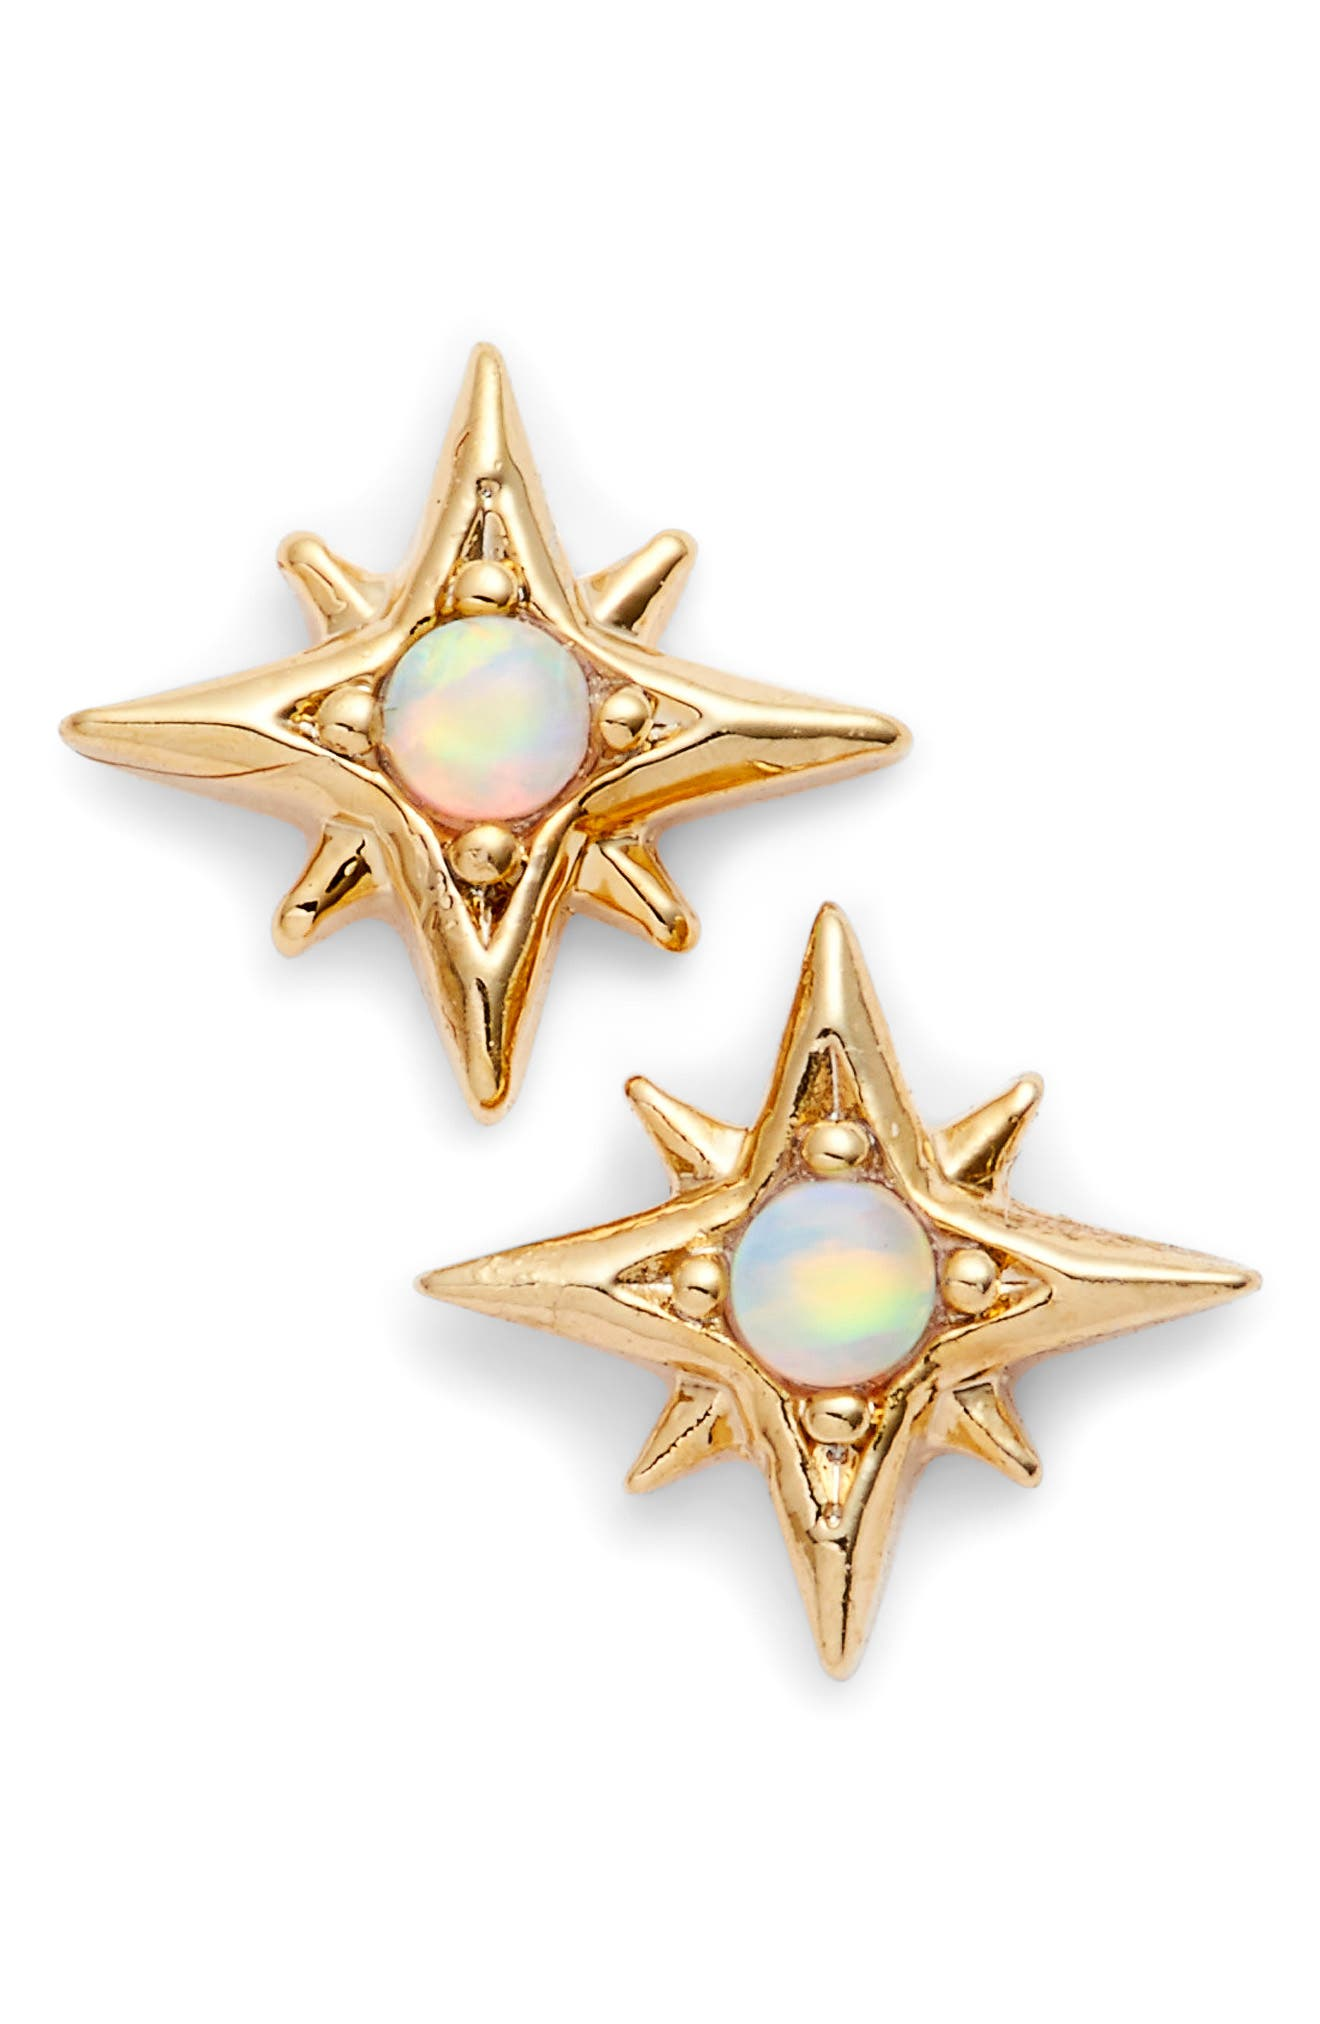 Sydee Cubic Zirconia Stud Earrings,                         Main,                         color, Opal/ Gold